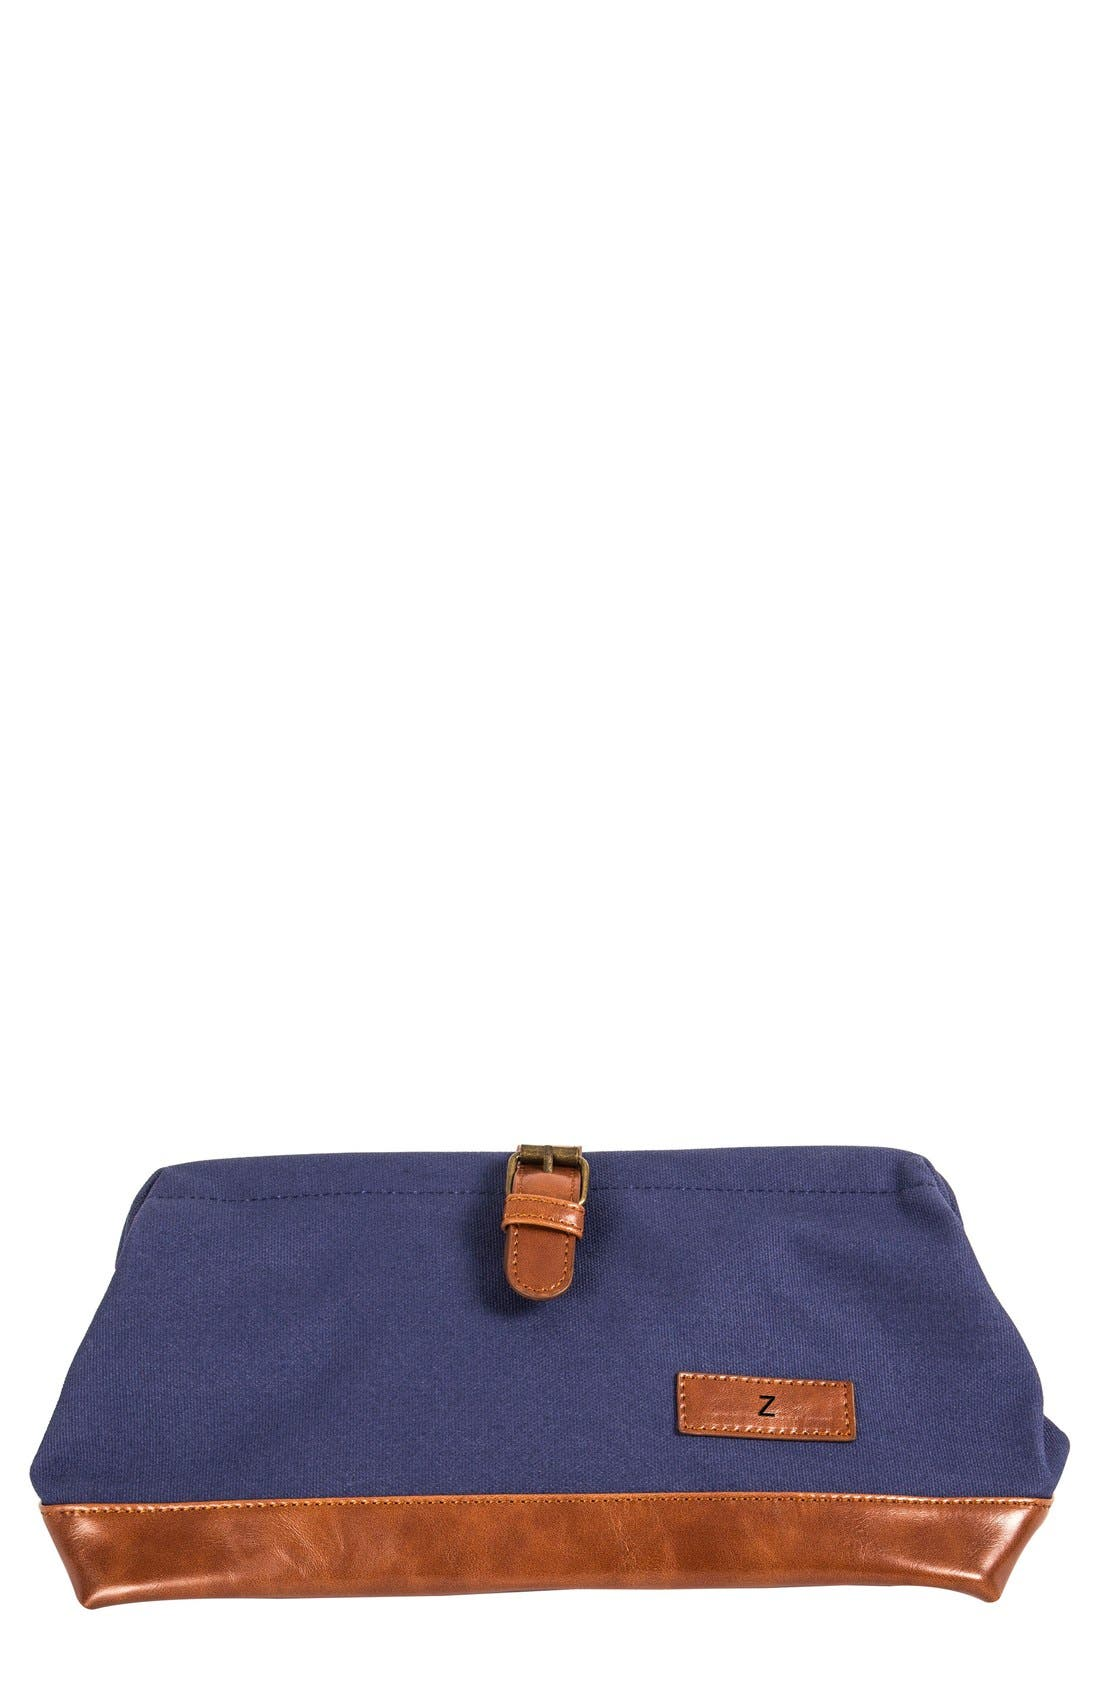 Monogram Travel Case,                             Main thumbnail 81, color,